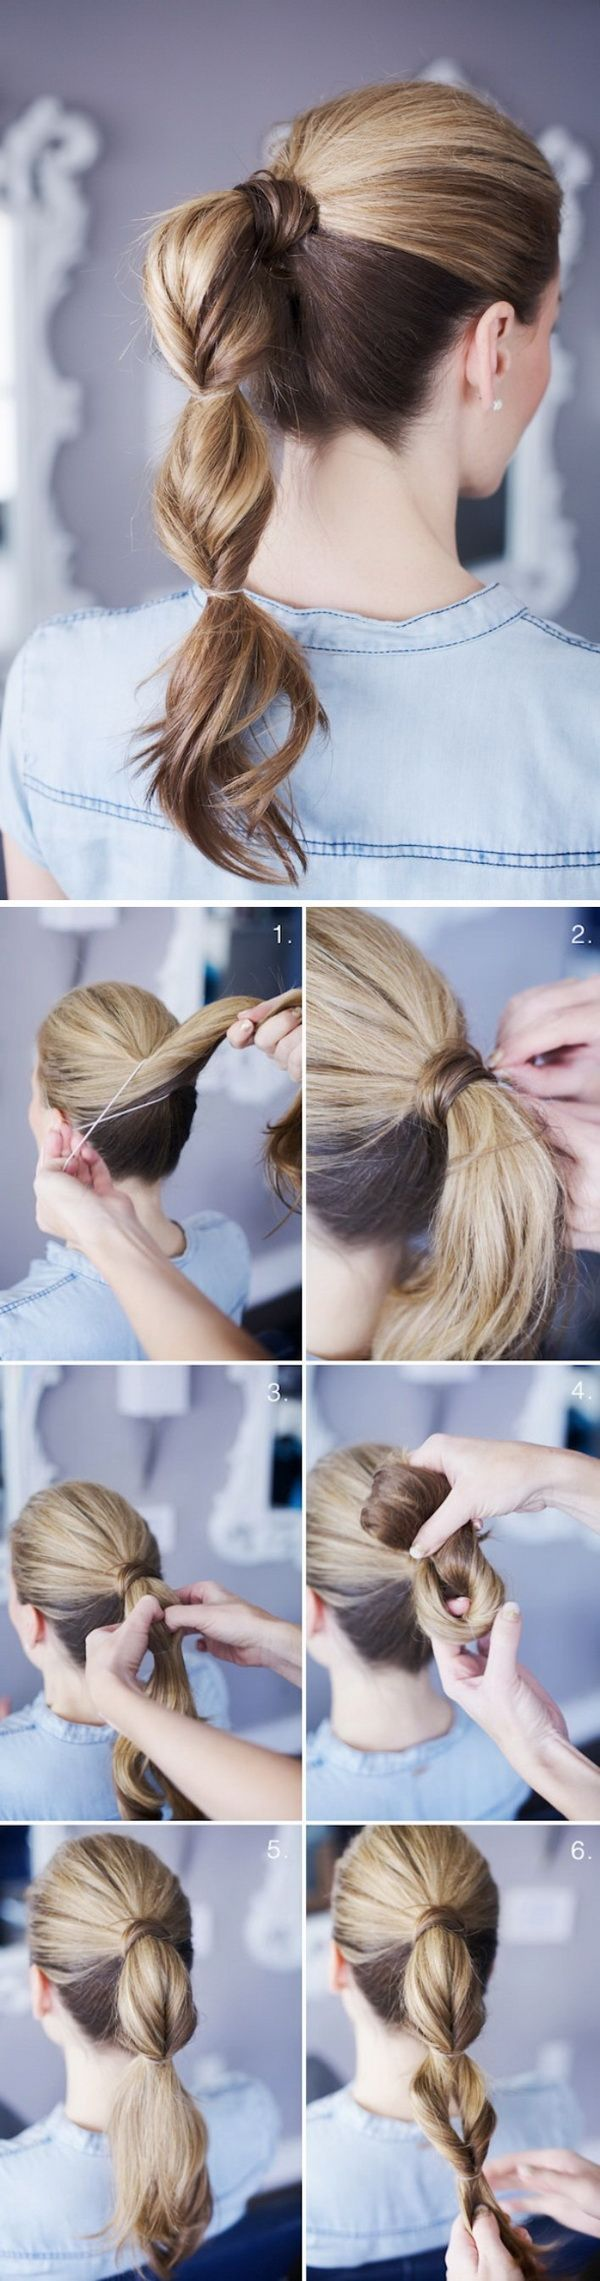 Topsy Tail Ponytail Tutorial